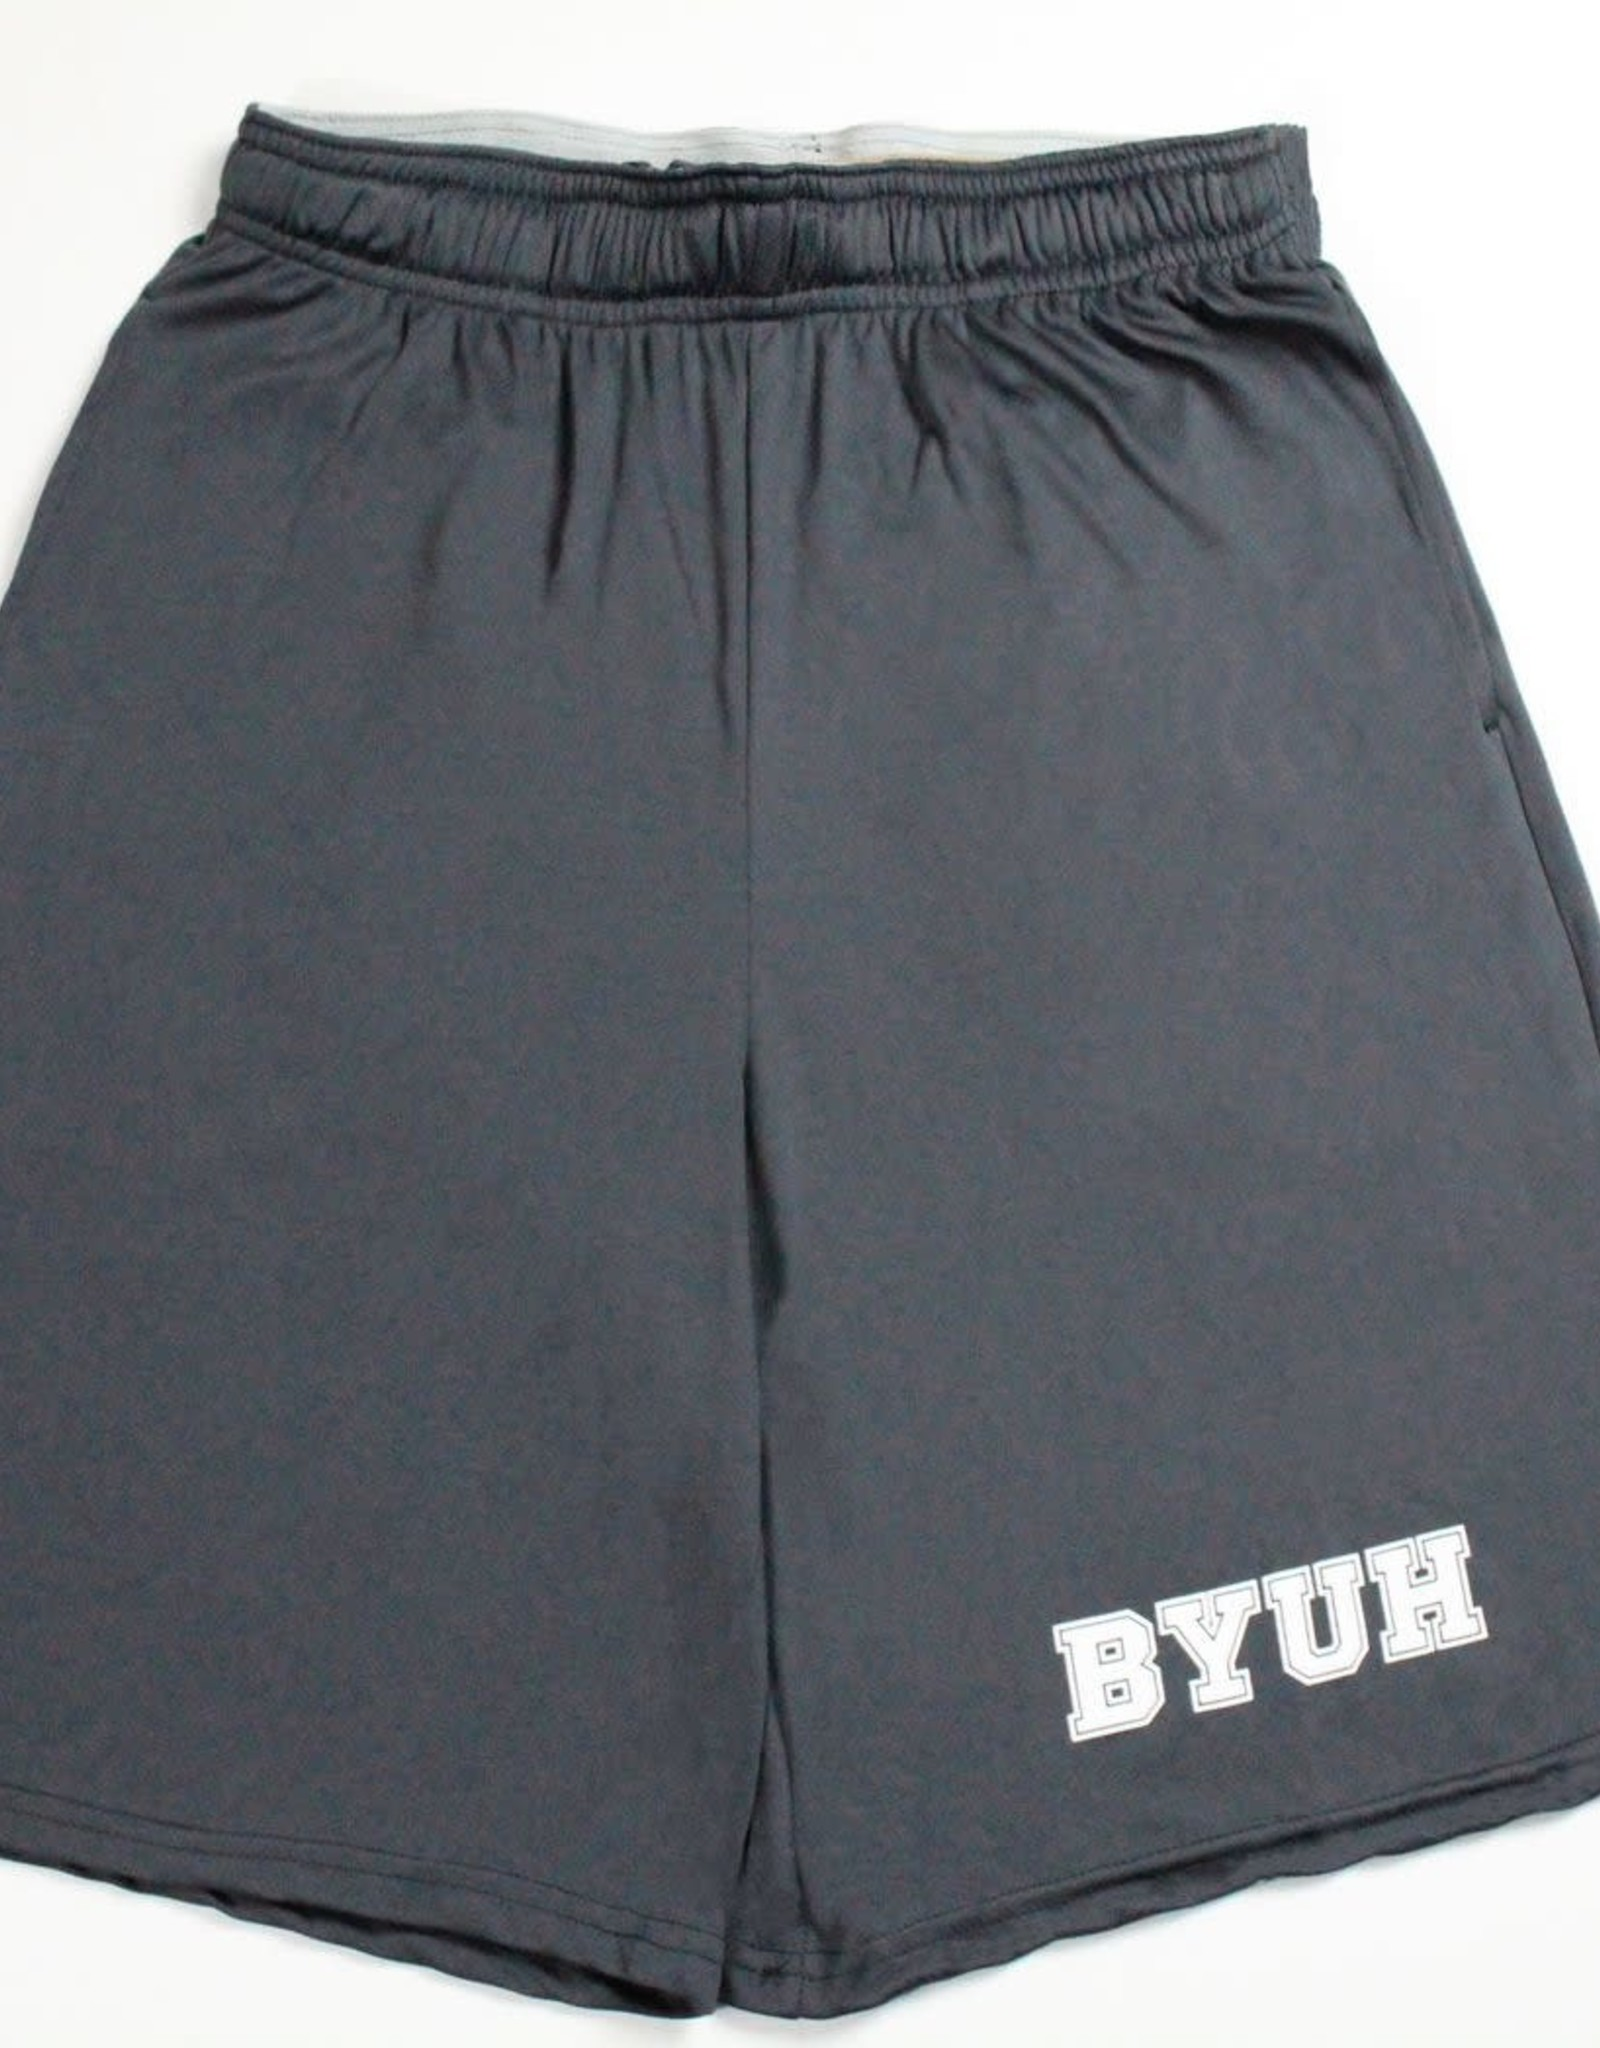 Clearance - BYUH Stealth Grey Shorts